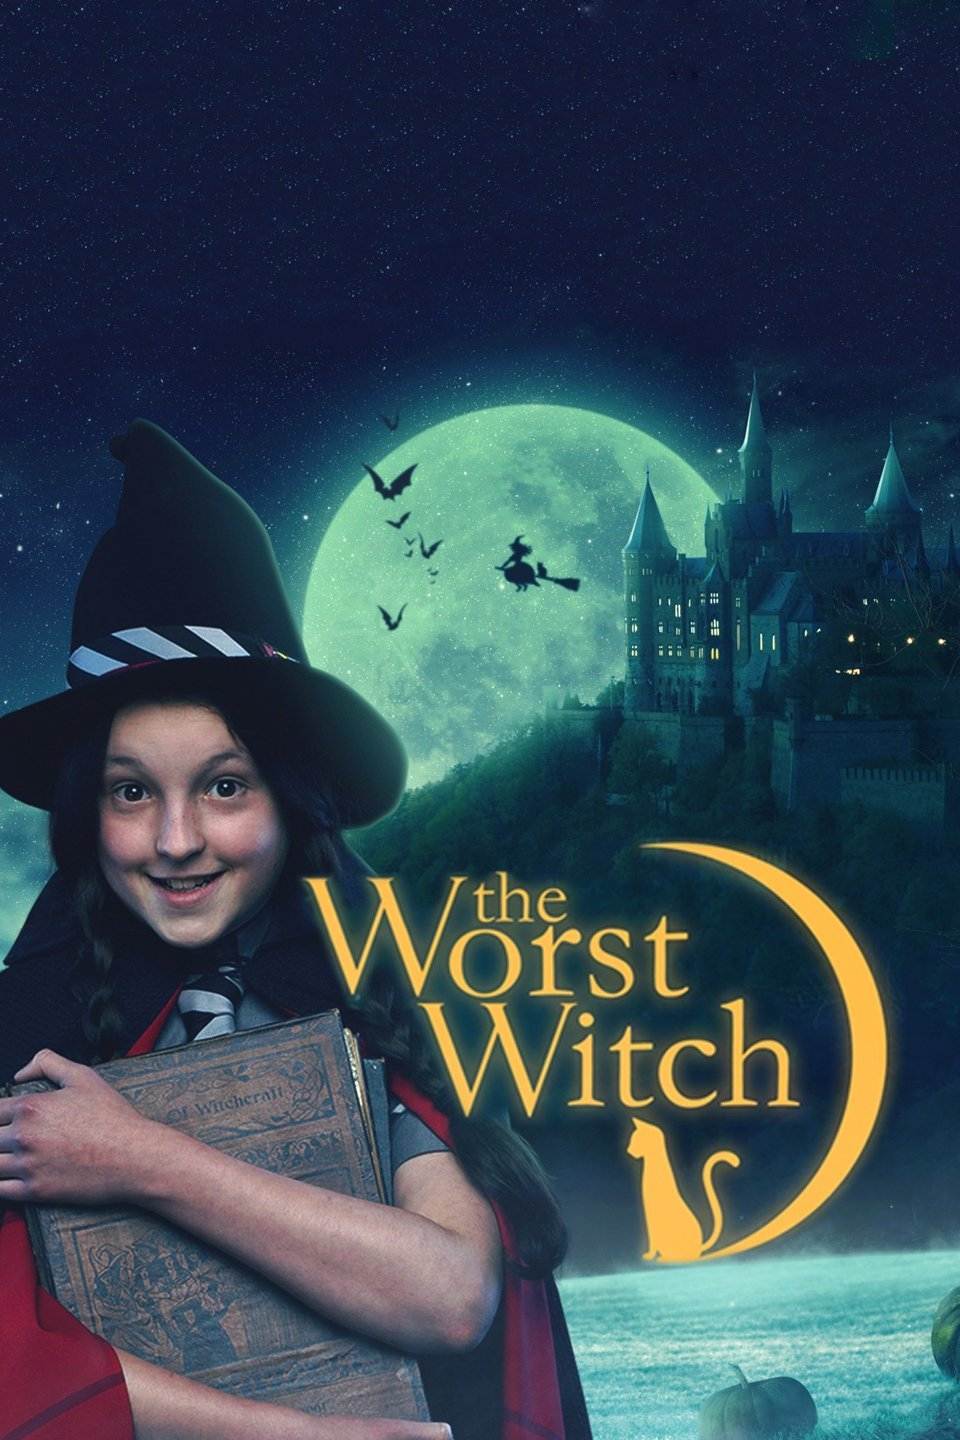 The Worst Witch S01 E05